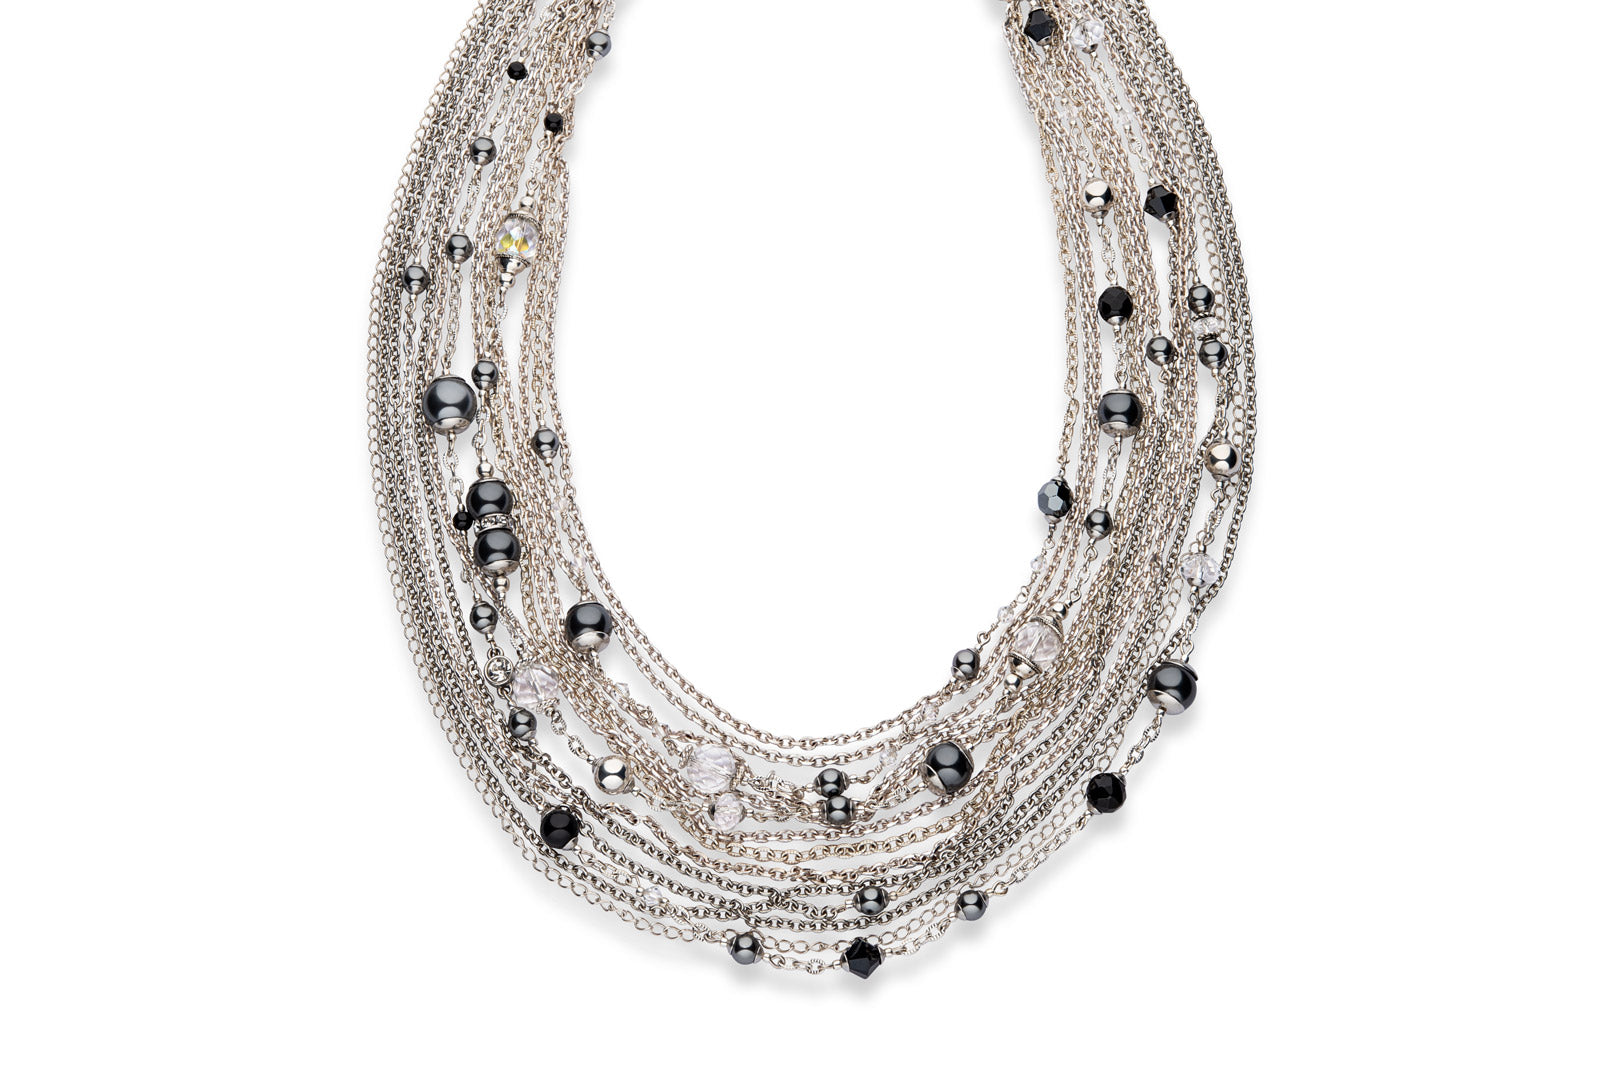 A statement necklace made from silver, crystal quartz, Swarovski crystal pearls and crystals